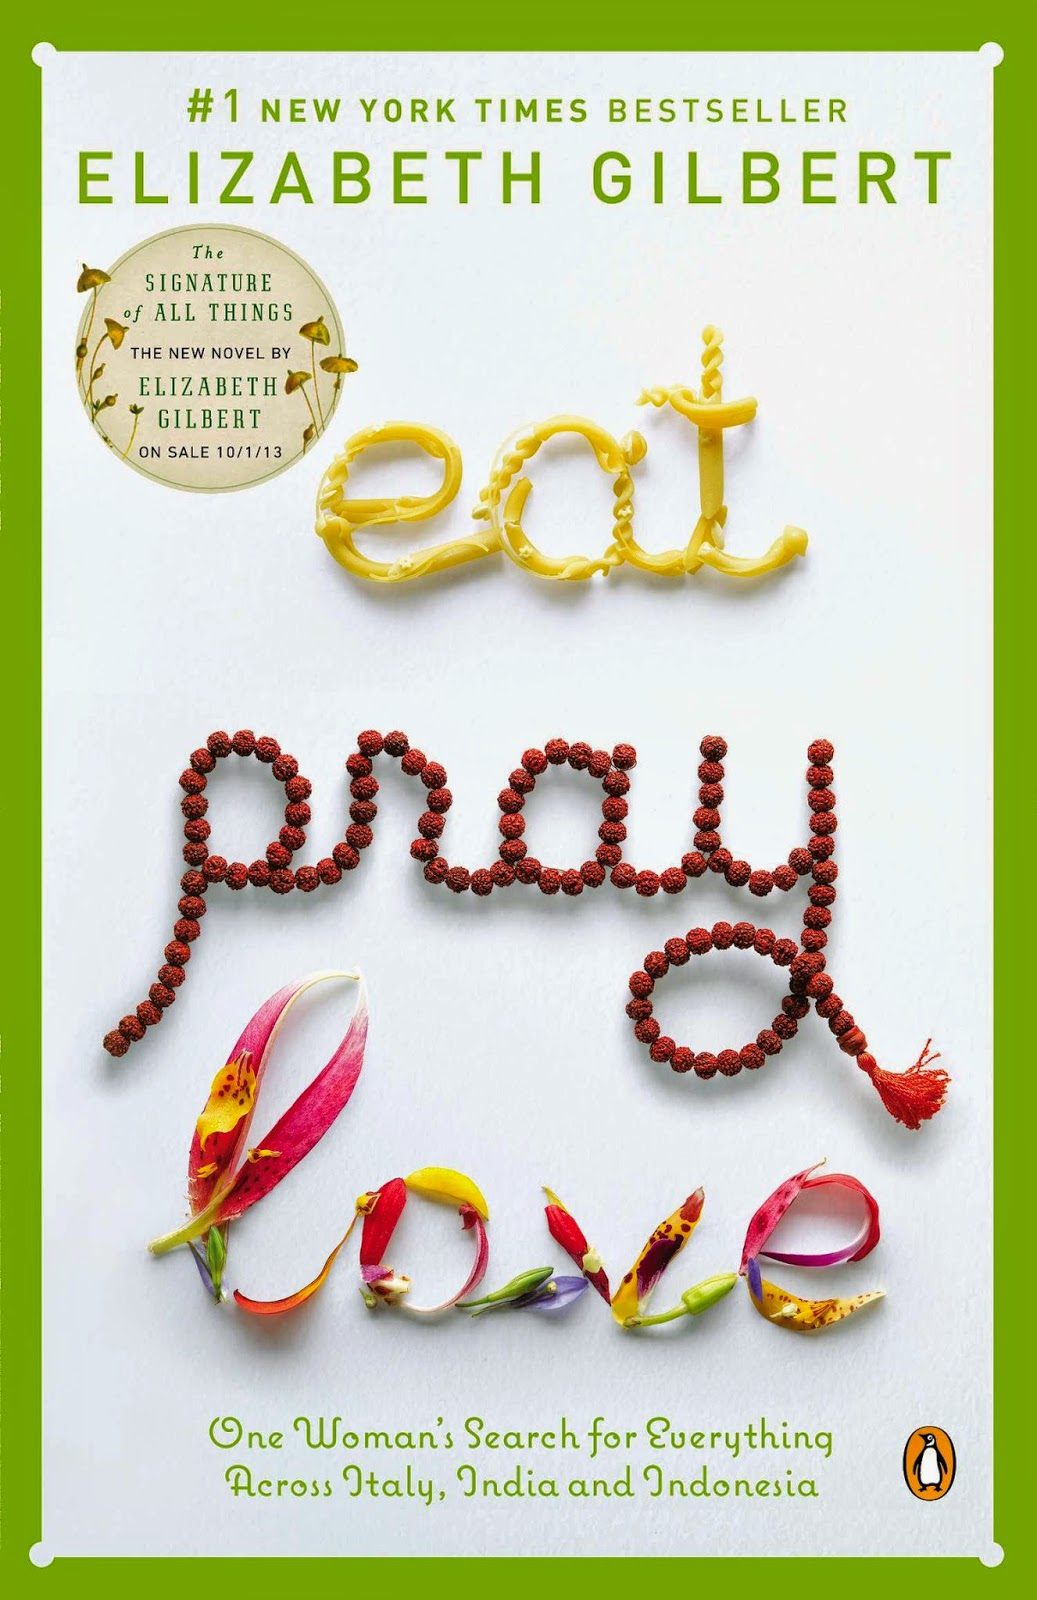 http://www.elizabethgilbert.com/books/eat-pray-love/